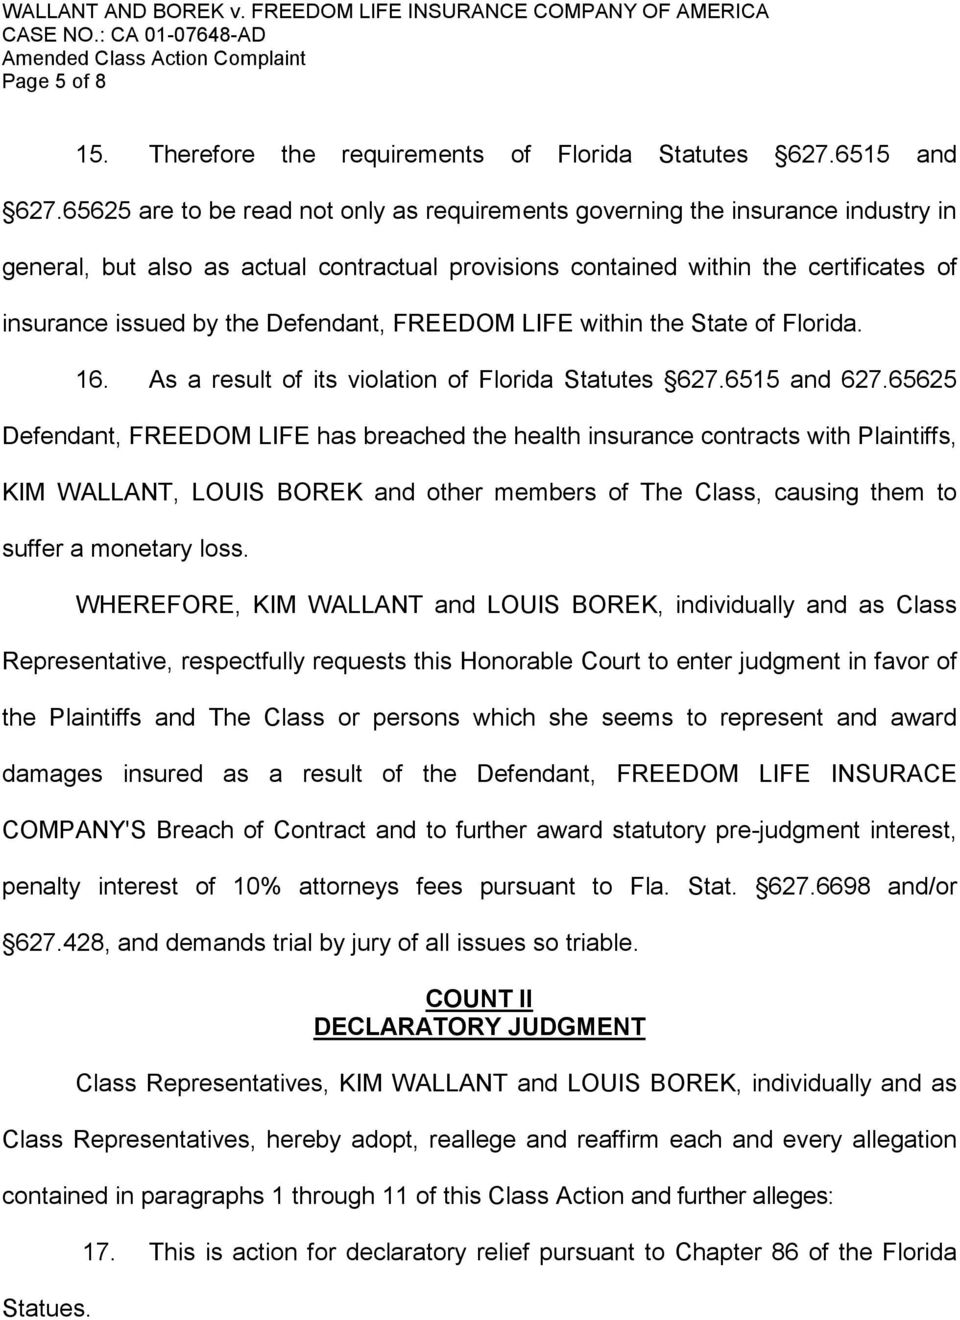 Defendant, FREEDOM LIFE within the State of Florida. 16. As a result of its violation of Florida Statutes 627.6515 and 627.